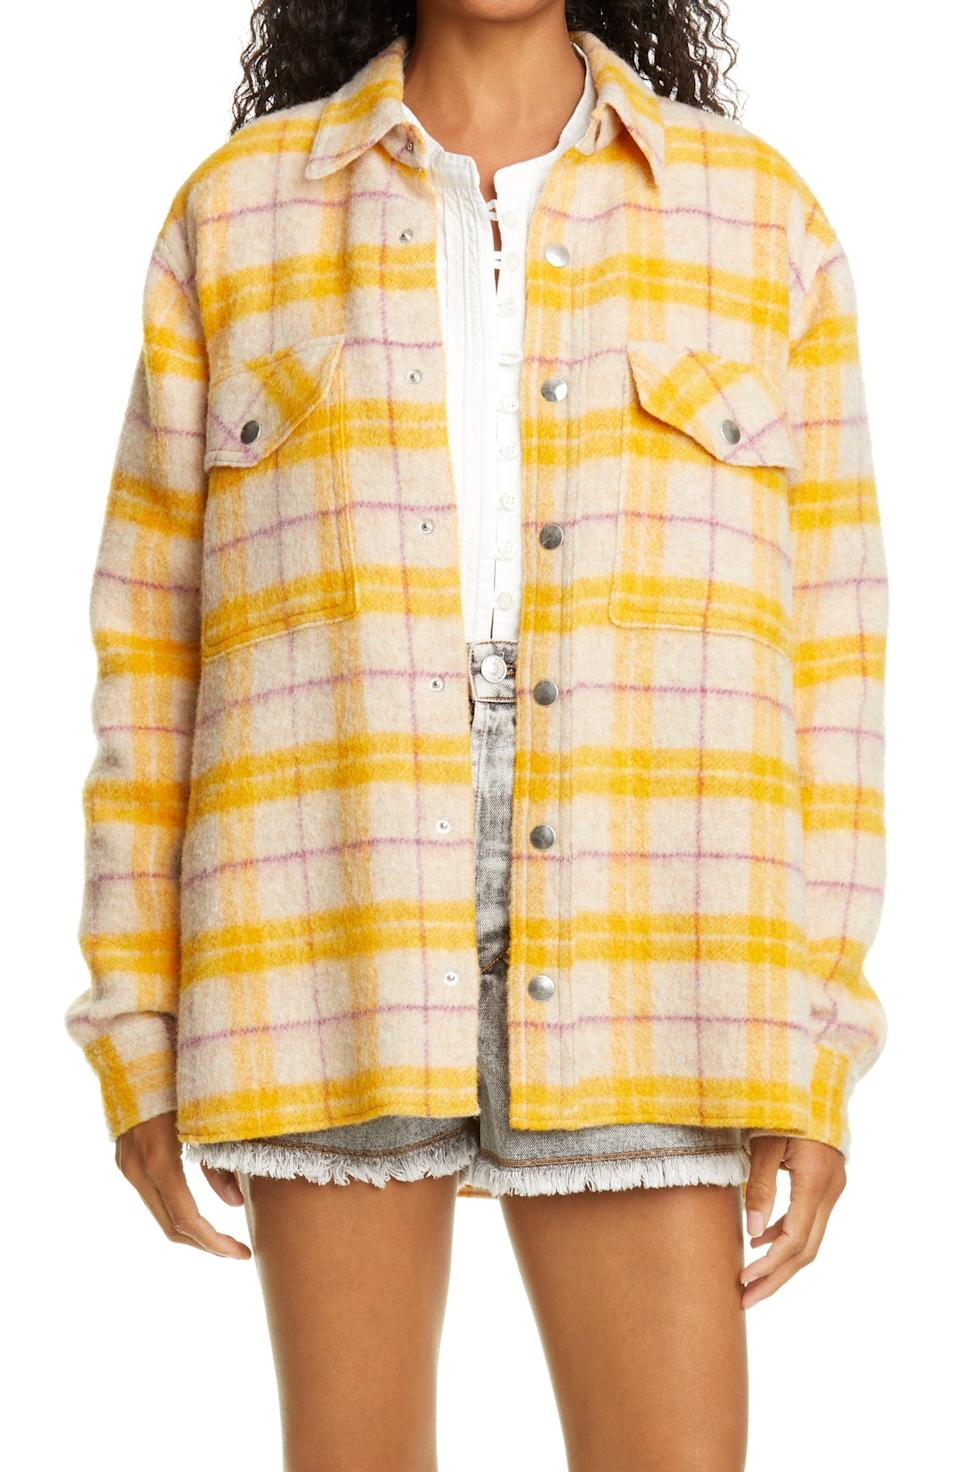 """<p><strong>ISABEL MARANT ETOILE</strong></p><p>nordstrom.com</p><p><strong>$560.00</strong></p><p><a href=""""https://go.redirectingat.com?id=74968X1596630&url=https%3A%2F%2Fwww.nordstrom.com%2Fs%2Fisabel-marant-etoile-faxonli-buffalo-wool-blend-shirt-jacket%2F5789283&sref=https%3A%2F%2Fwww.cosmopolitan.com%2Fstyle-beauty%2Ffashion%2Fg36232237%2Fbest-shackets%2F"""" rel=""""nofollow noopener"""" target=""""_blank"""" data-ylk=""""slk:Shop Now"""" class=""""link rapid-noclick-resp"""">Shop Now</a></p><p>If you're looking for a designer buy you don't regret, might I introduce you to this lemon babe?</p>"""